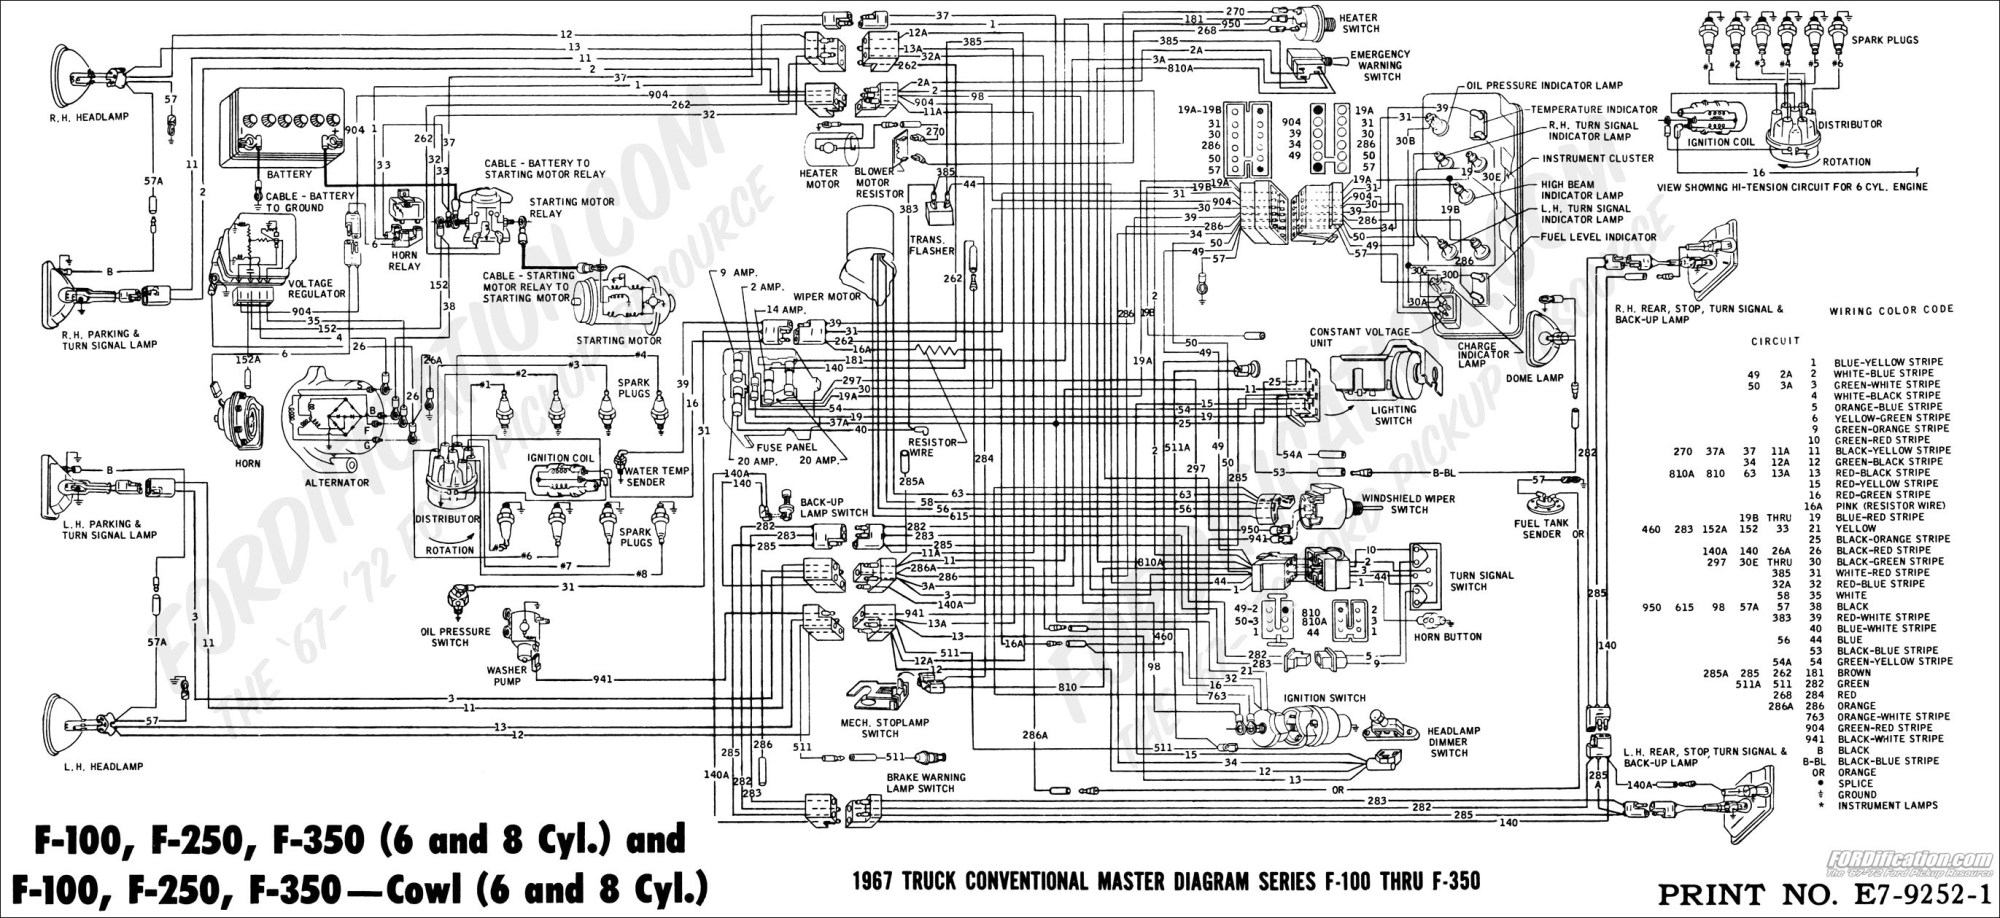 hight resolution of 99 ford explorer engine diagram 1999 ford truck wiring diagram wiring data of 99 ford explorer